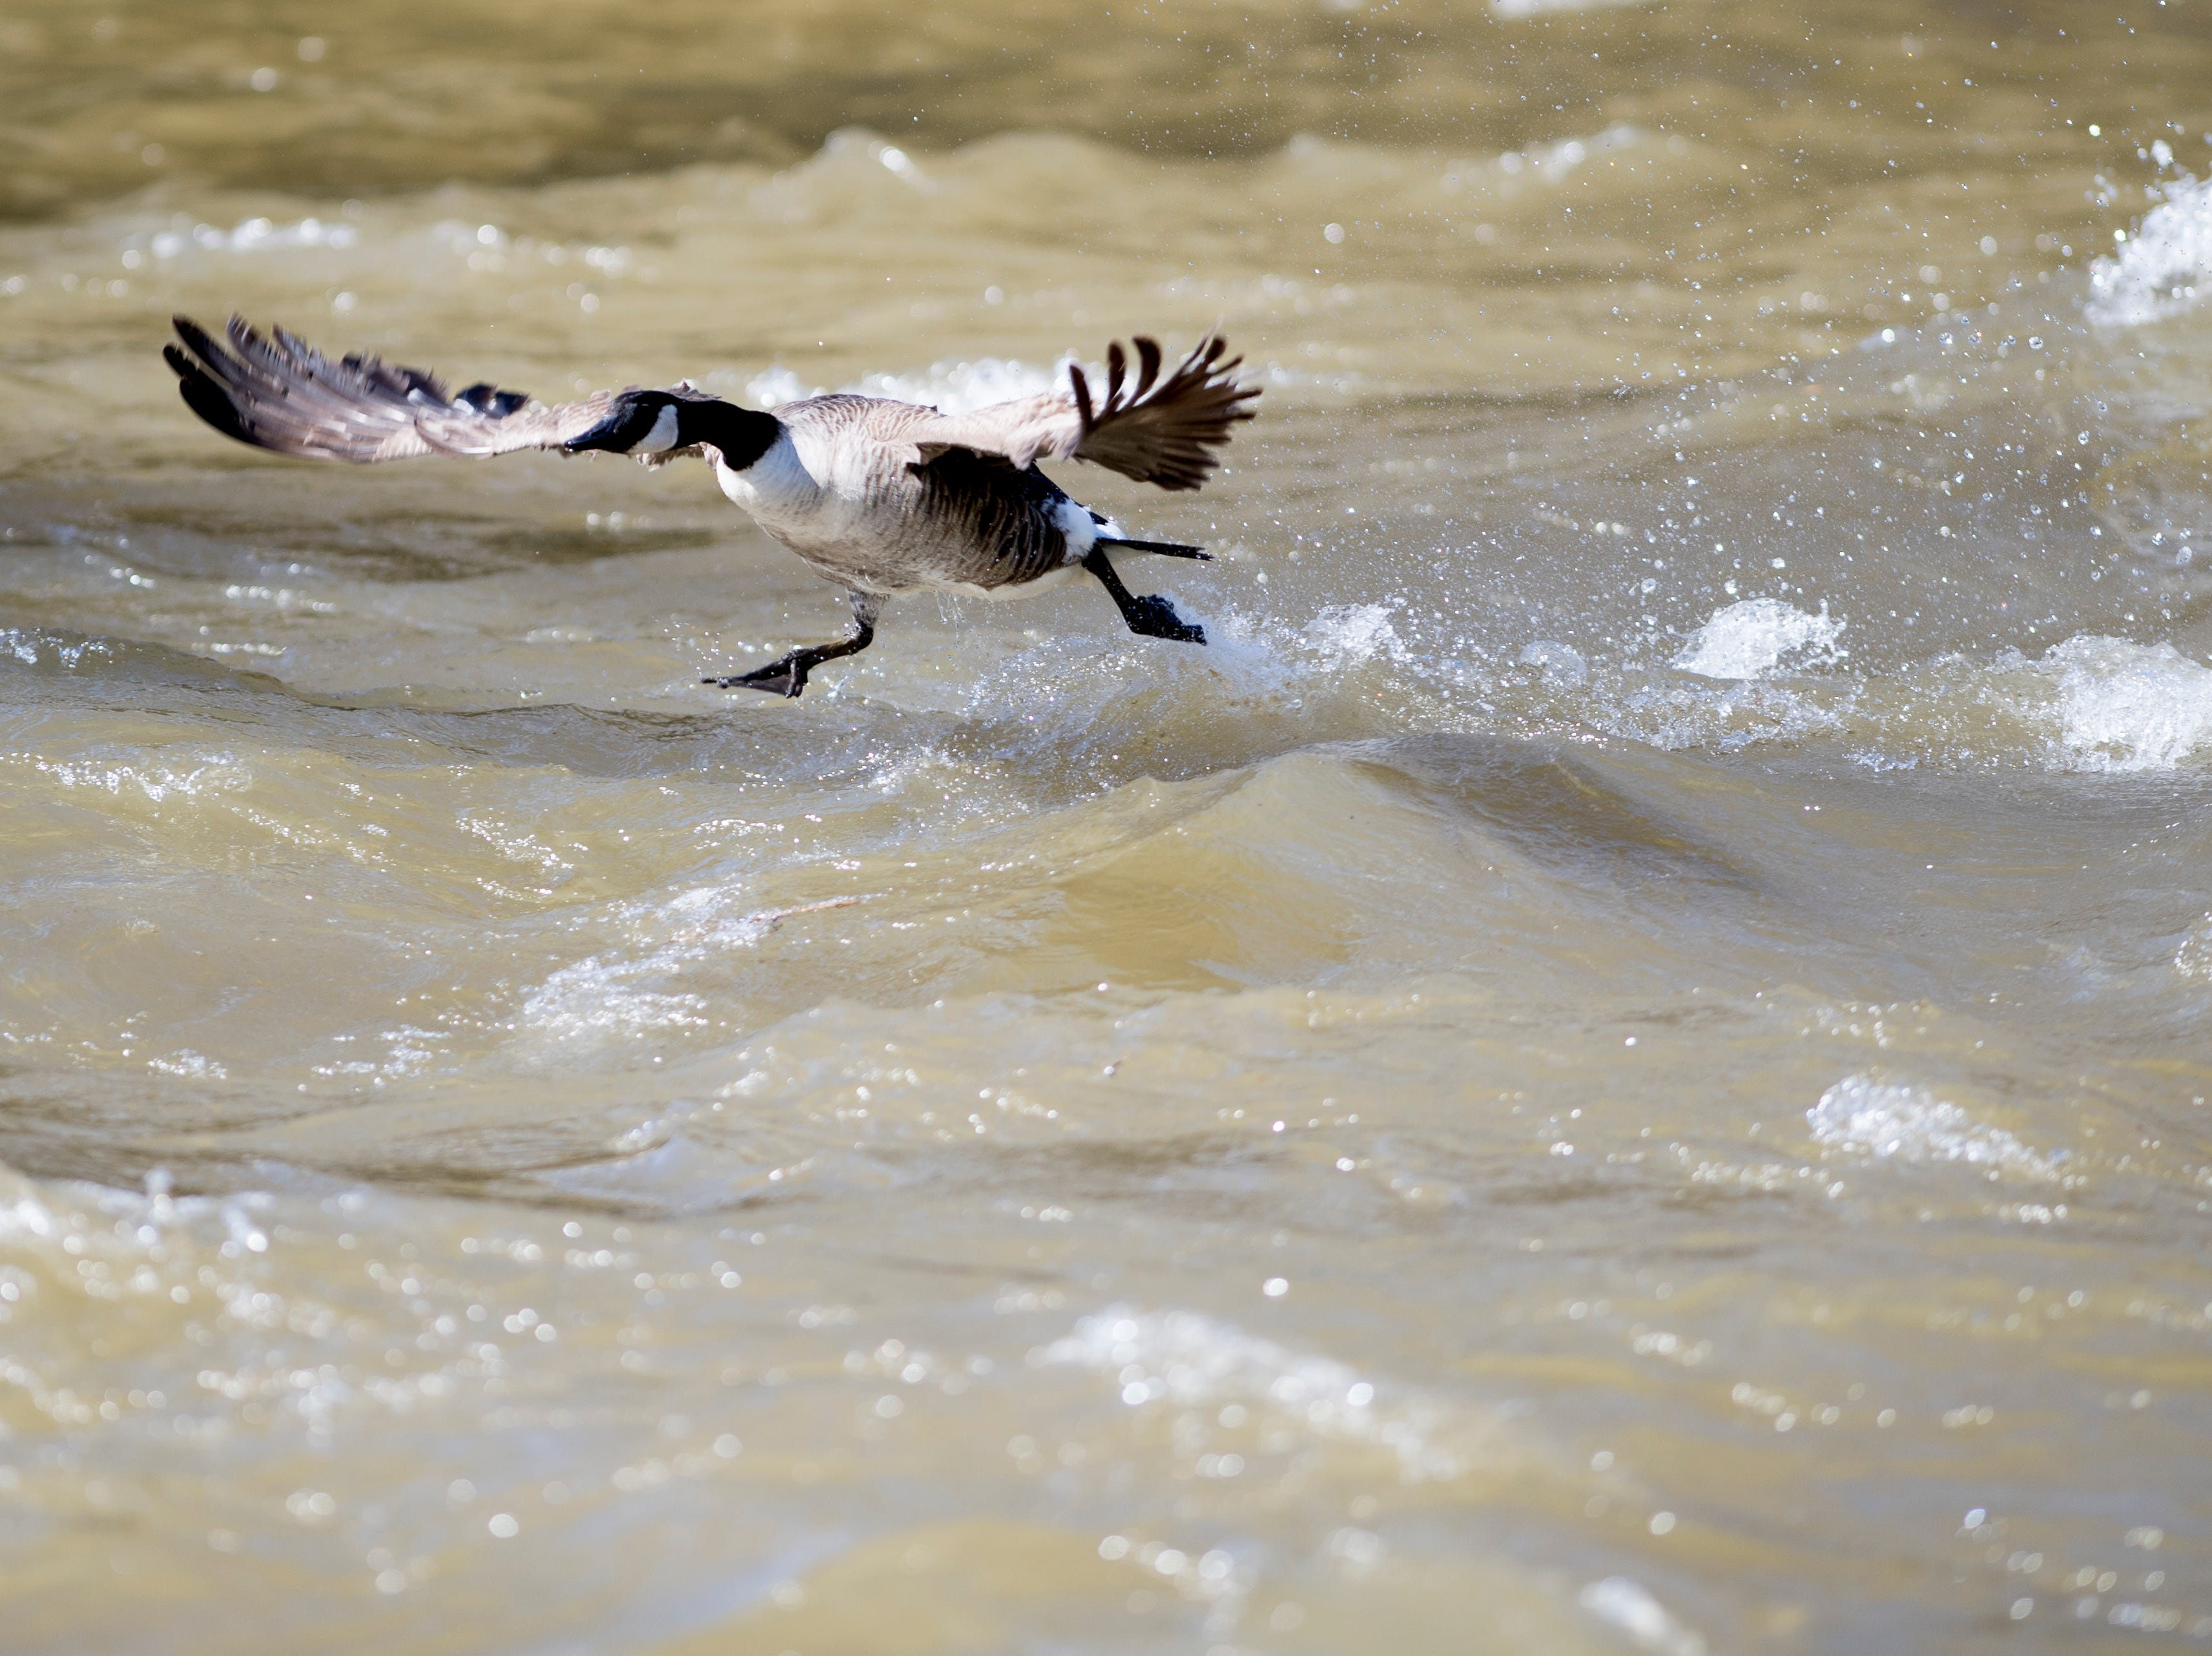 A goose tries to beat a swift current along the West Prong Little Pigeon River in Pigeon Forge, Tennessee on Sunday, February 24, 2019.